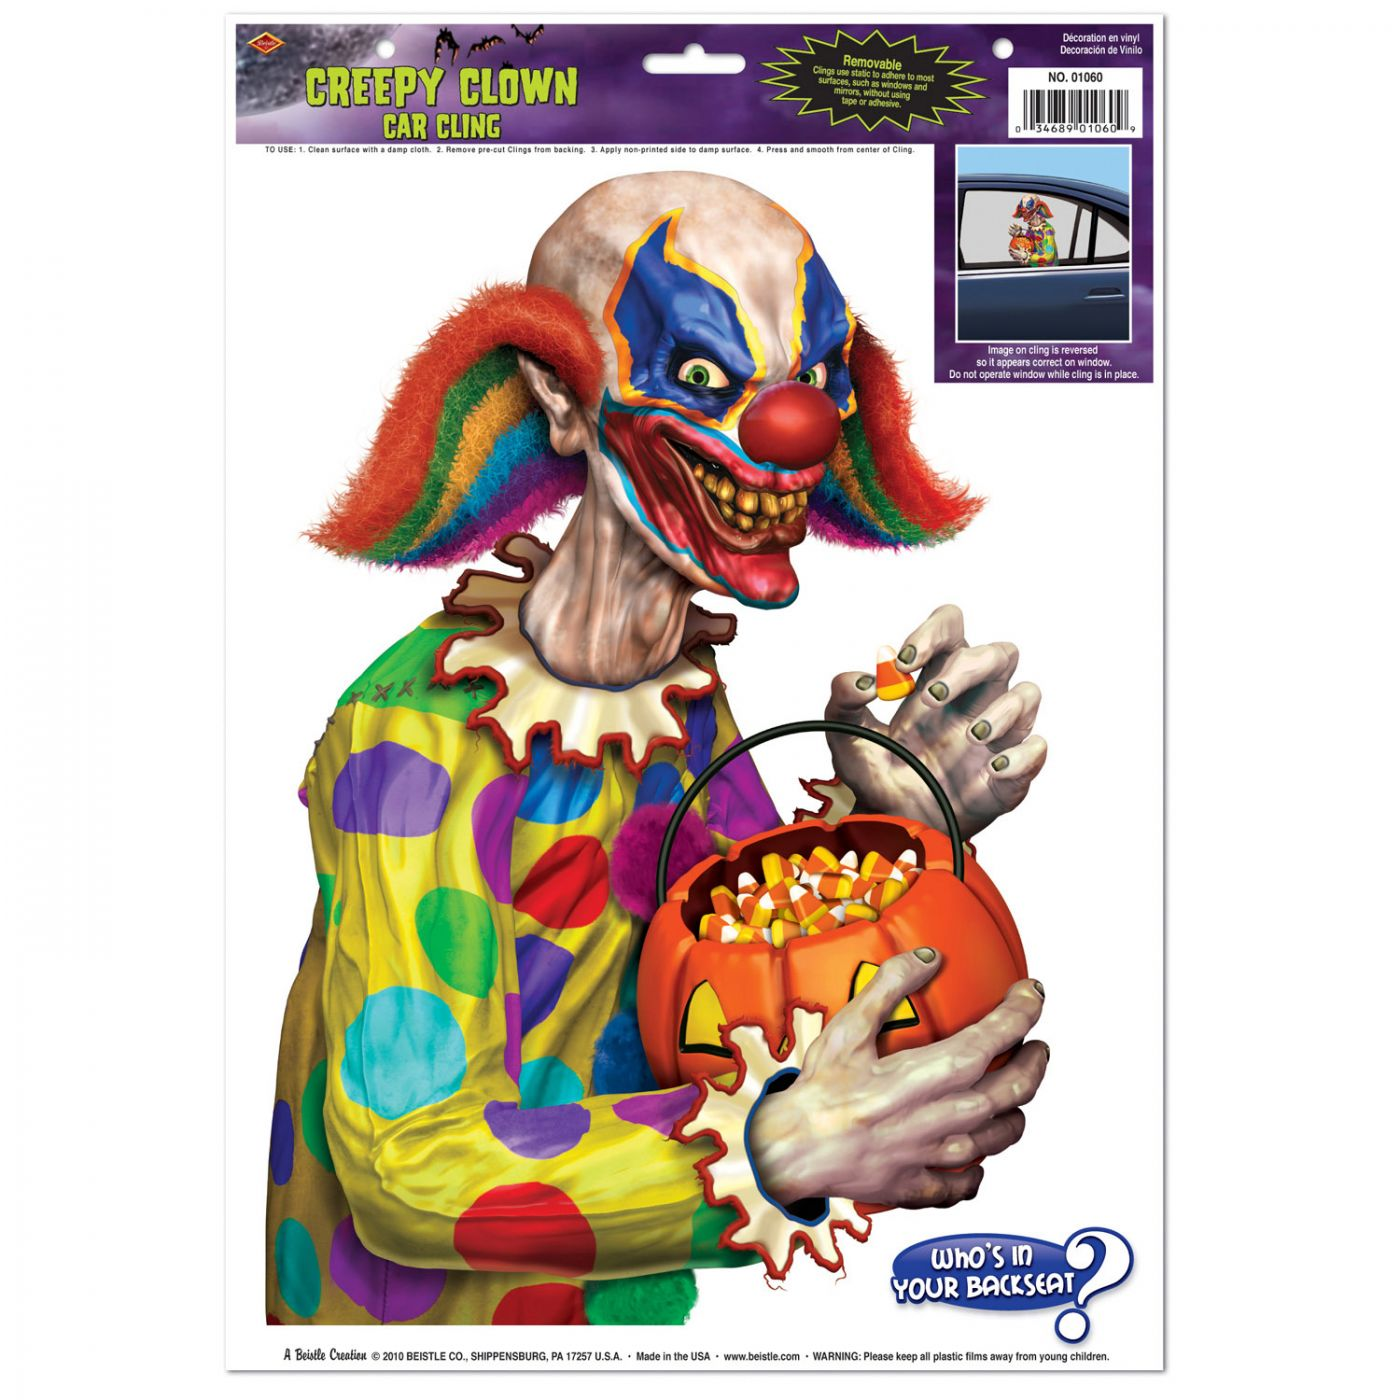 Creepy Clown Car Cling image